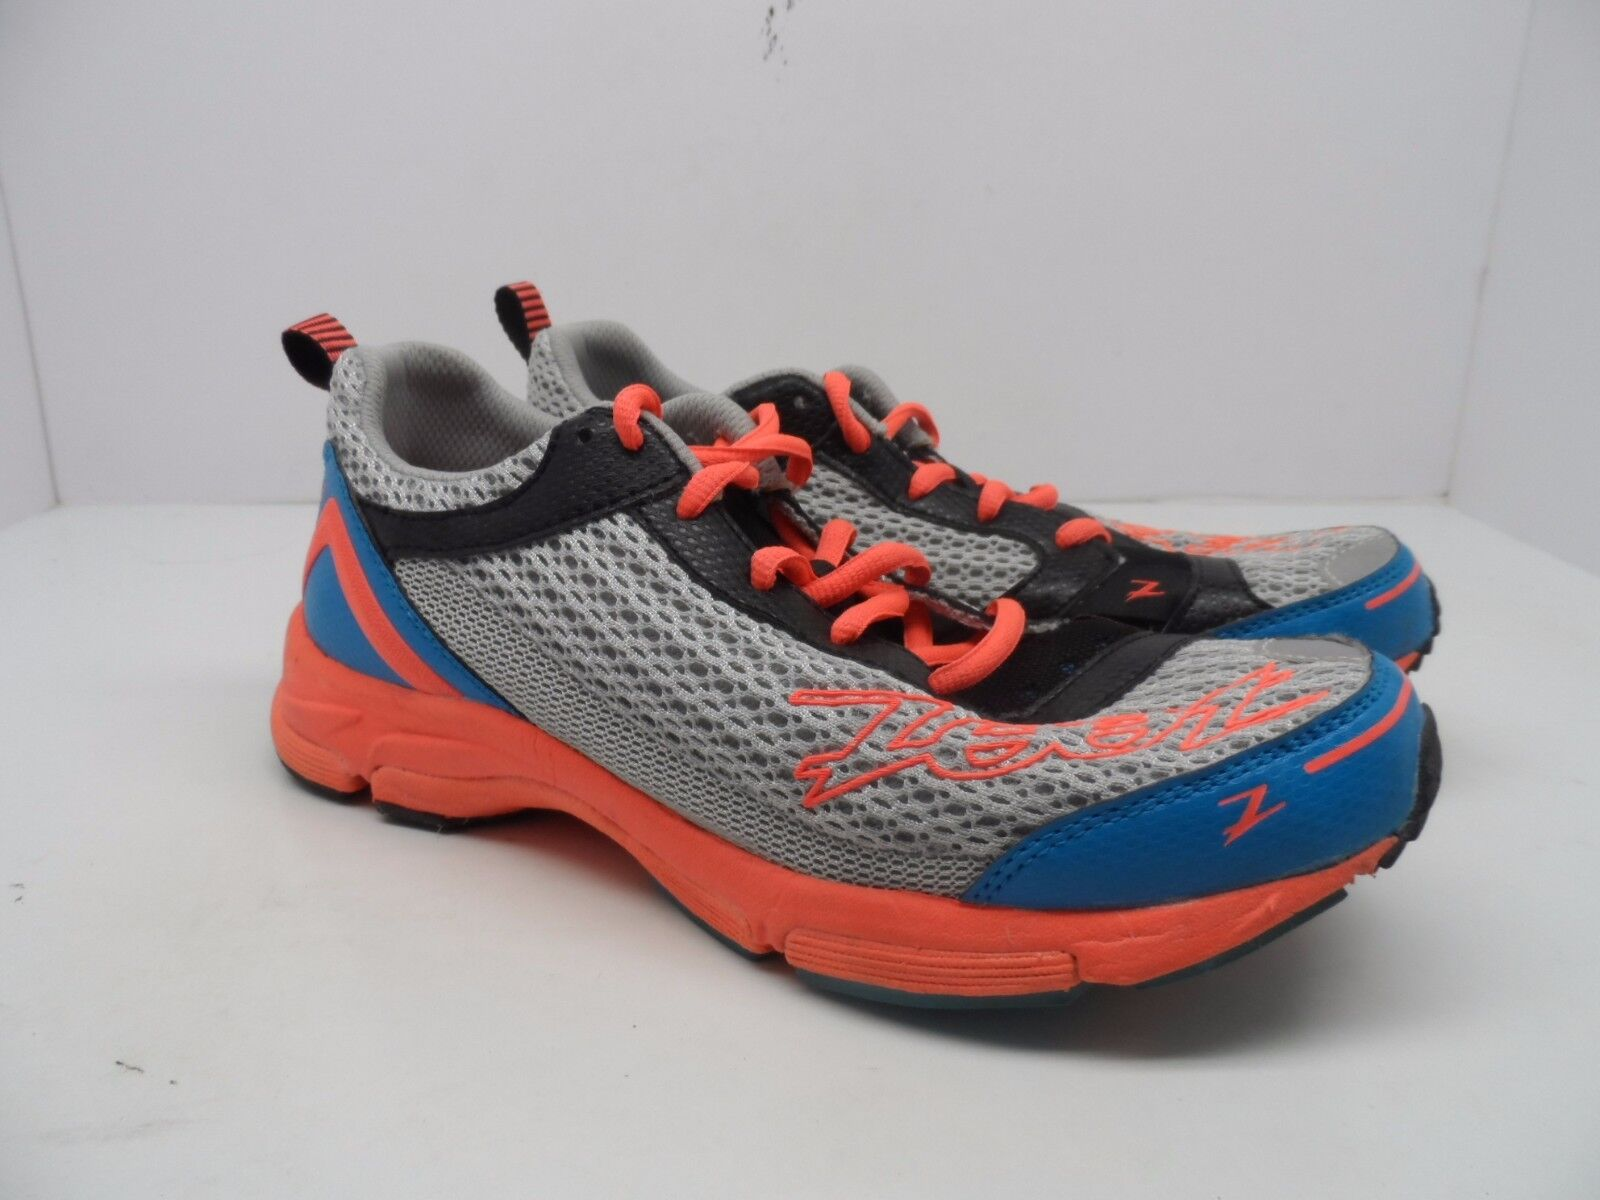 Zoot Running Women's Tempo Trainer Running Zoot Shoe Silver/Atomic Blue/Fiery Coral Size 8.5M a952d6